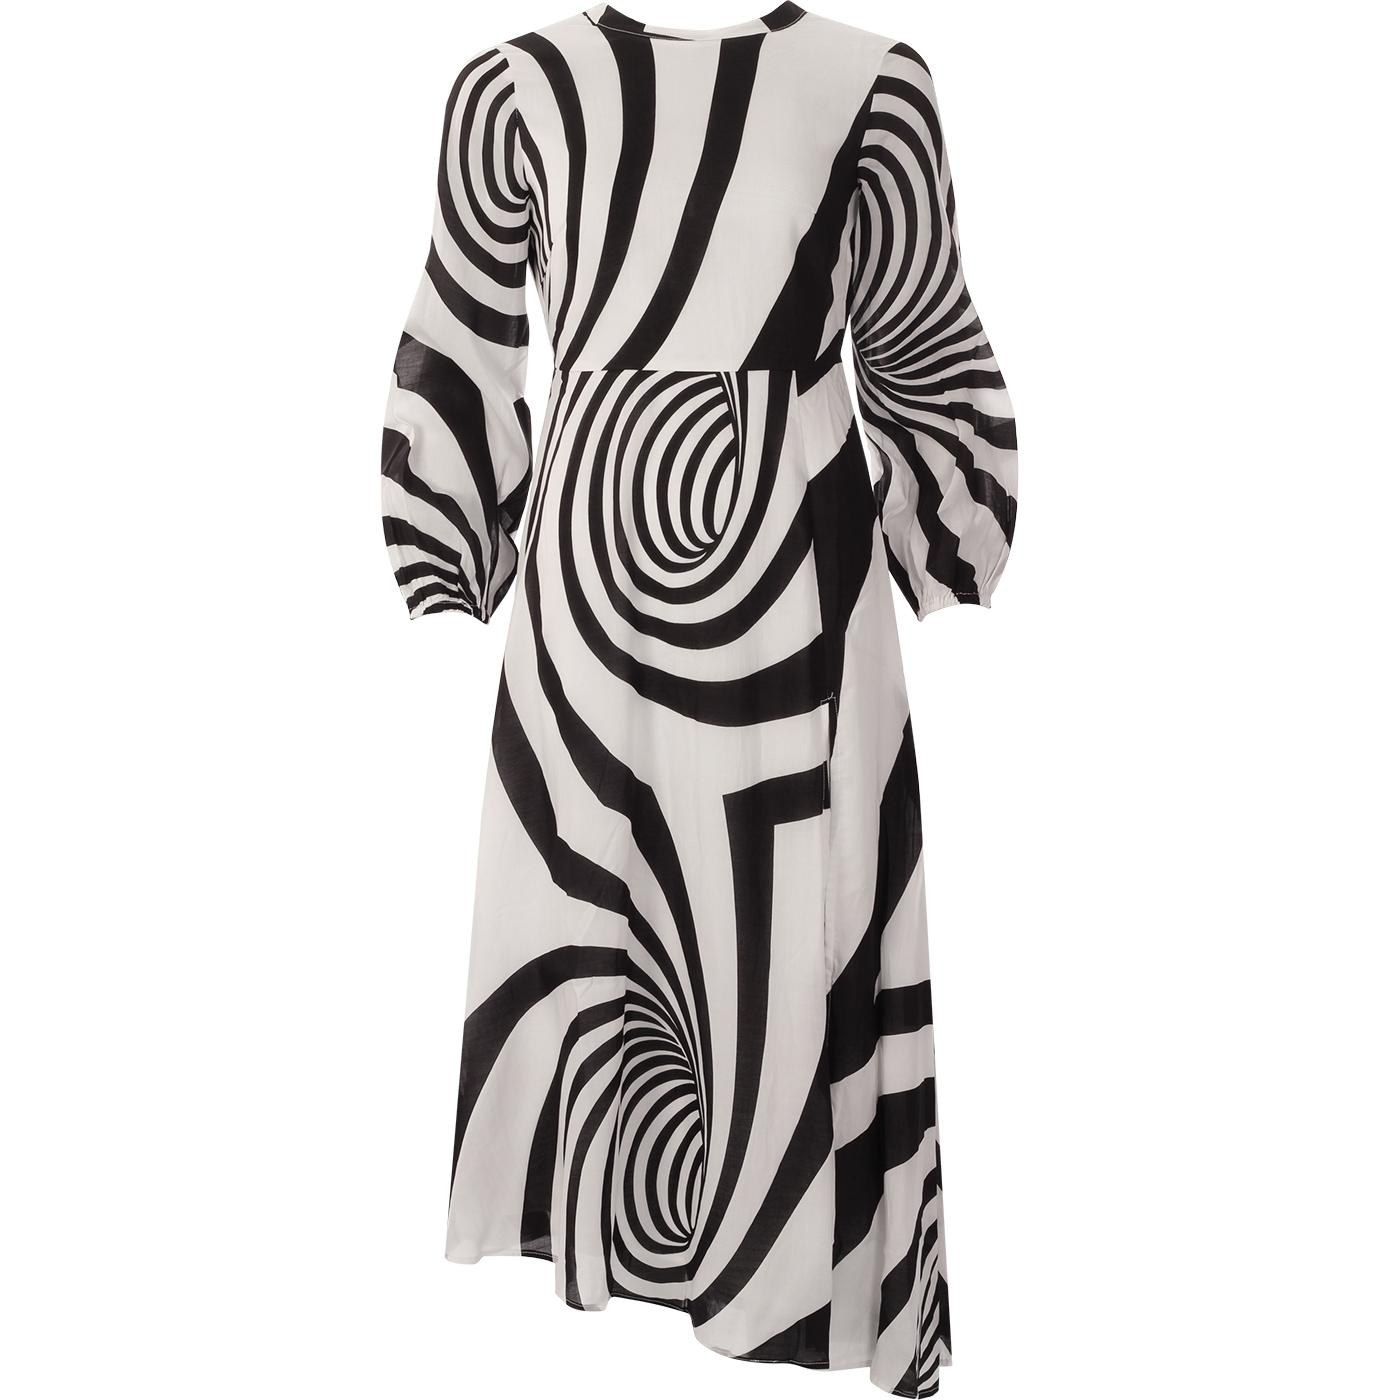 Dalliance TRAFFIC PEOPLE 1960s Op Art Swirl Dress